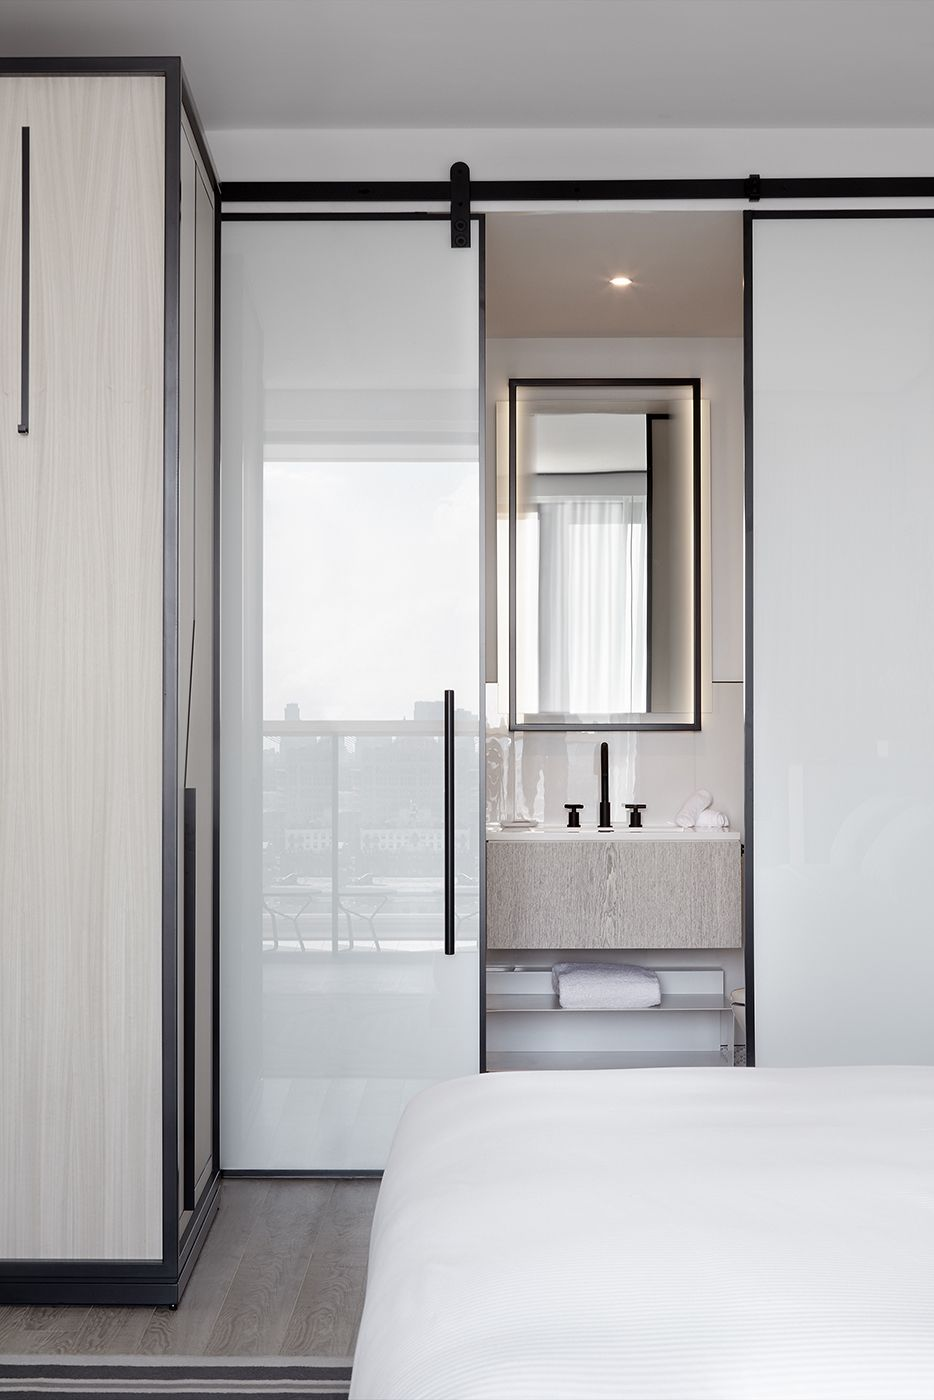 Marvelous Sliding Door The William Vale Residence By Studio Munge Beutiful Home Inspiration Semekurdistantinfo